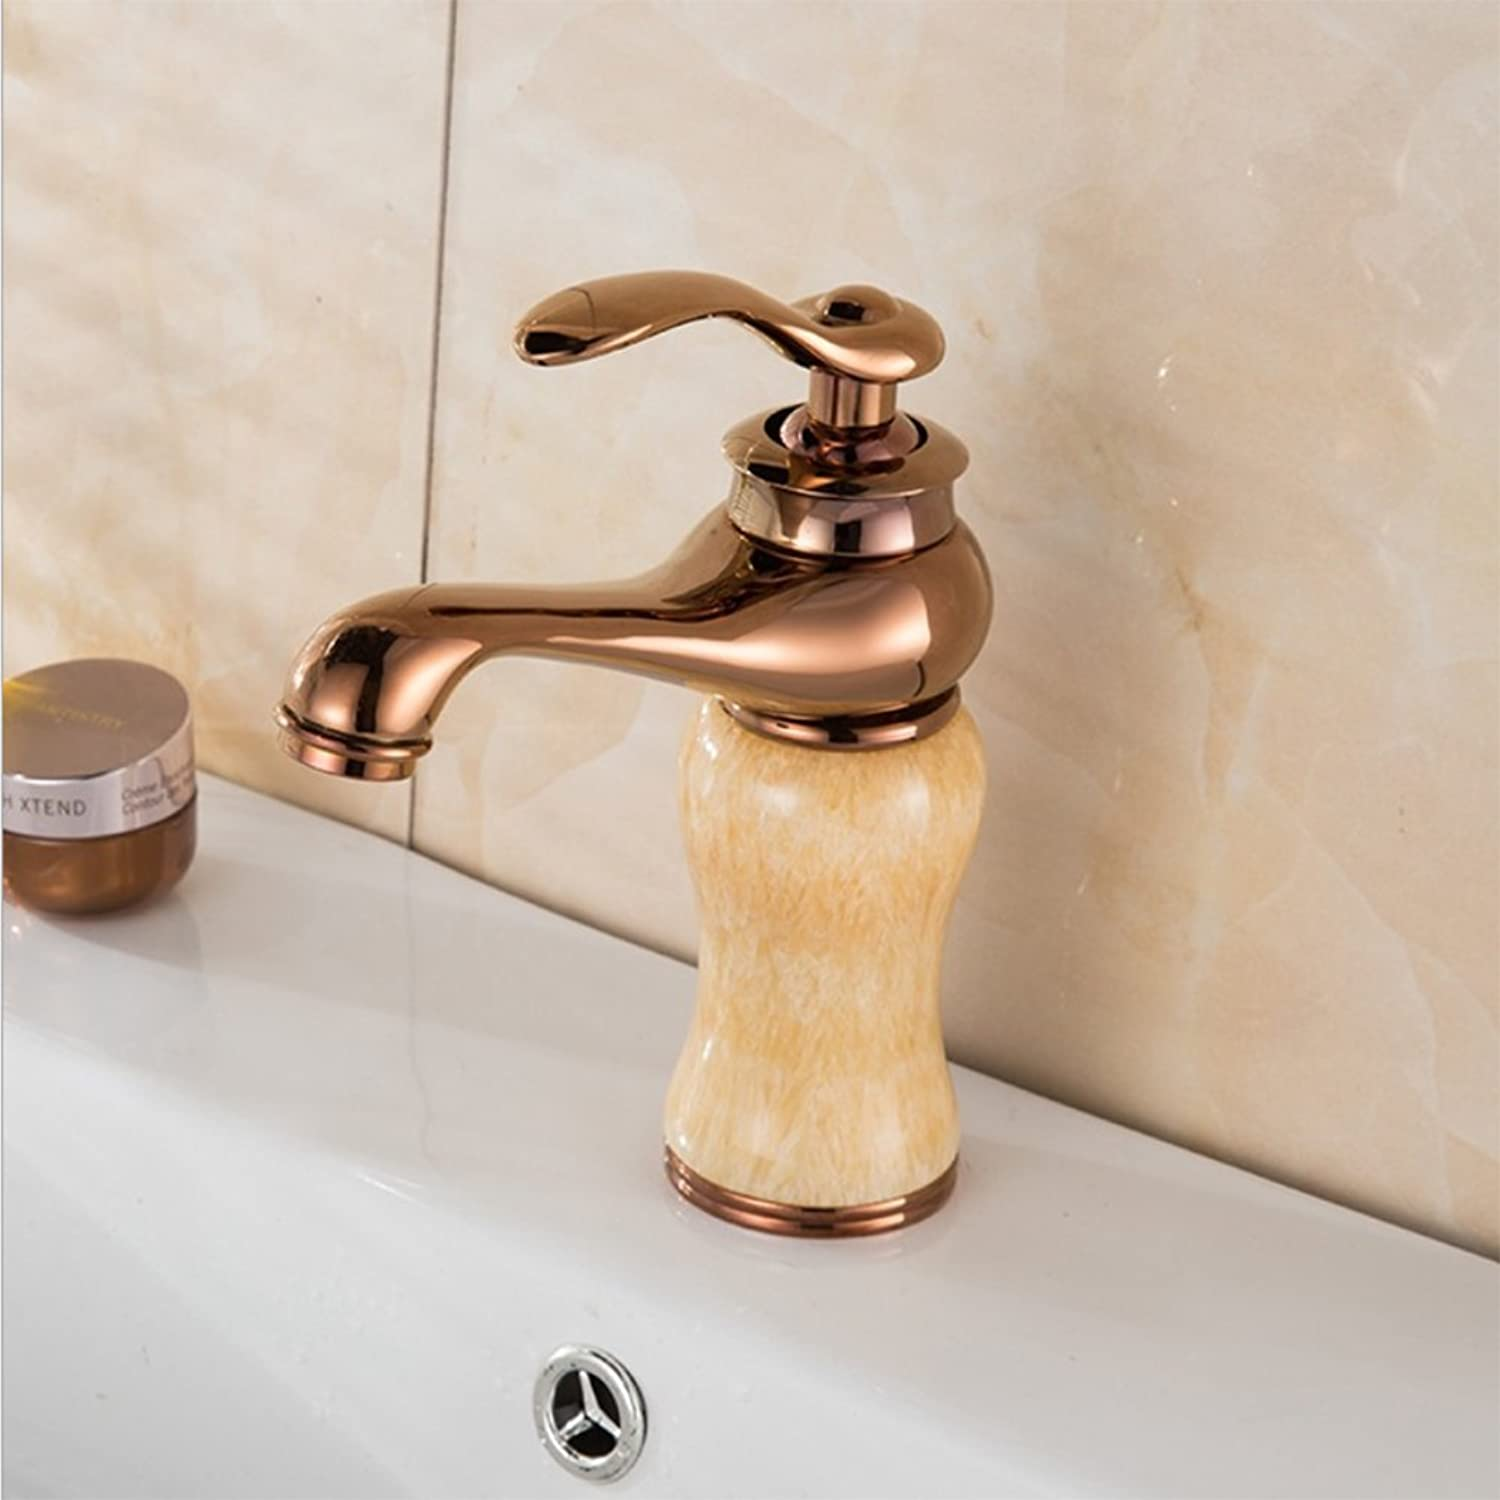 Oofay Copper Hot And Cold Single Hole Jade Bathroom Faucet,Bathroom Wash Basin Jade Basin Faucet,B